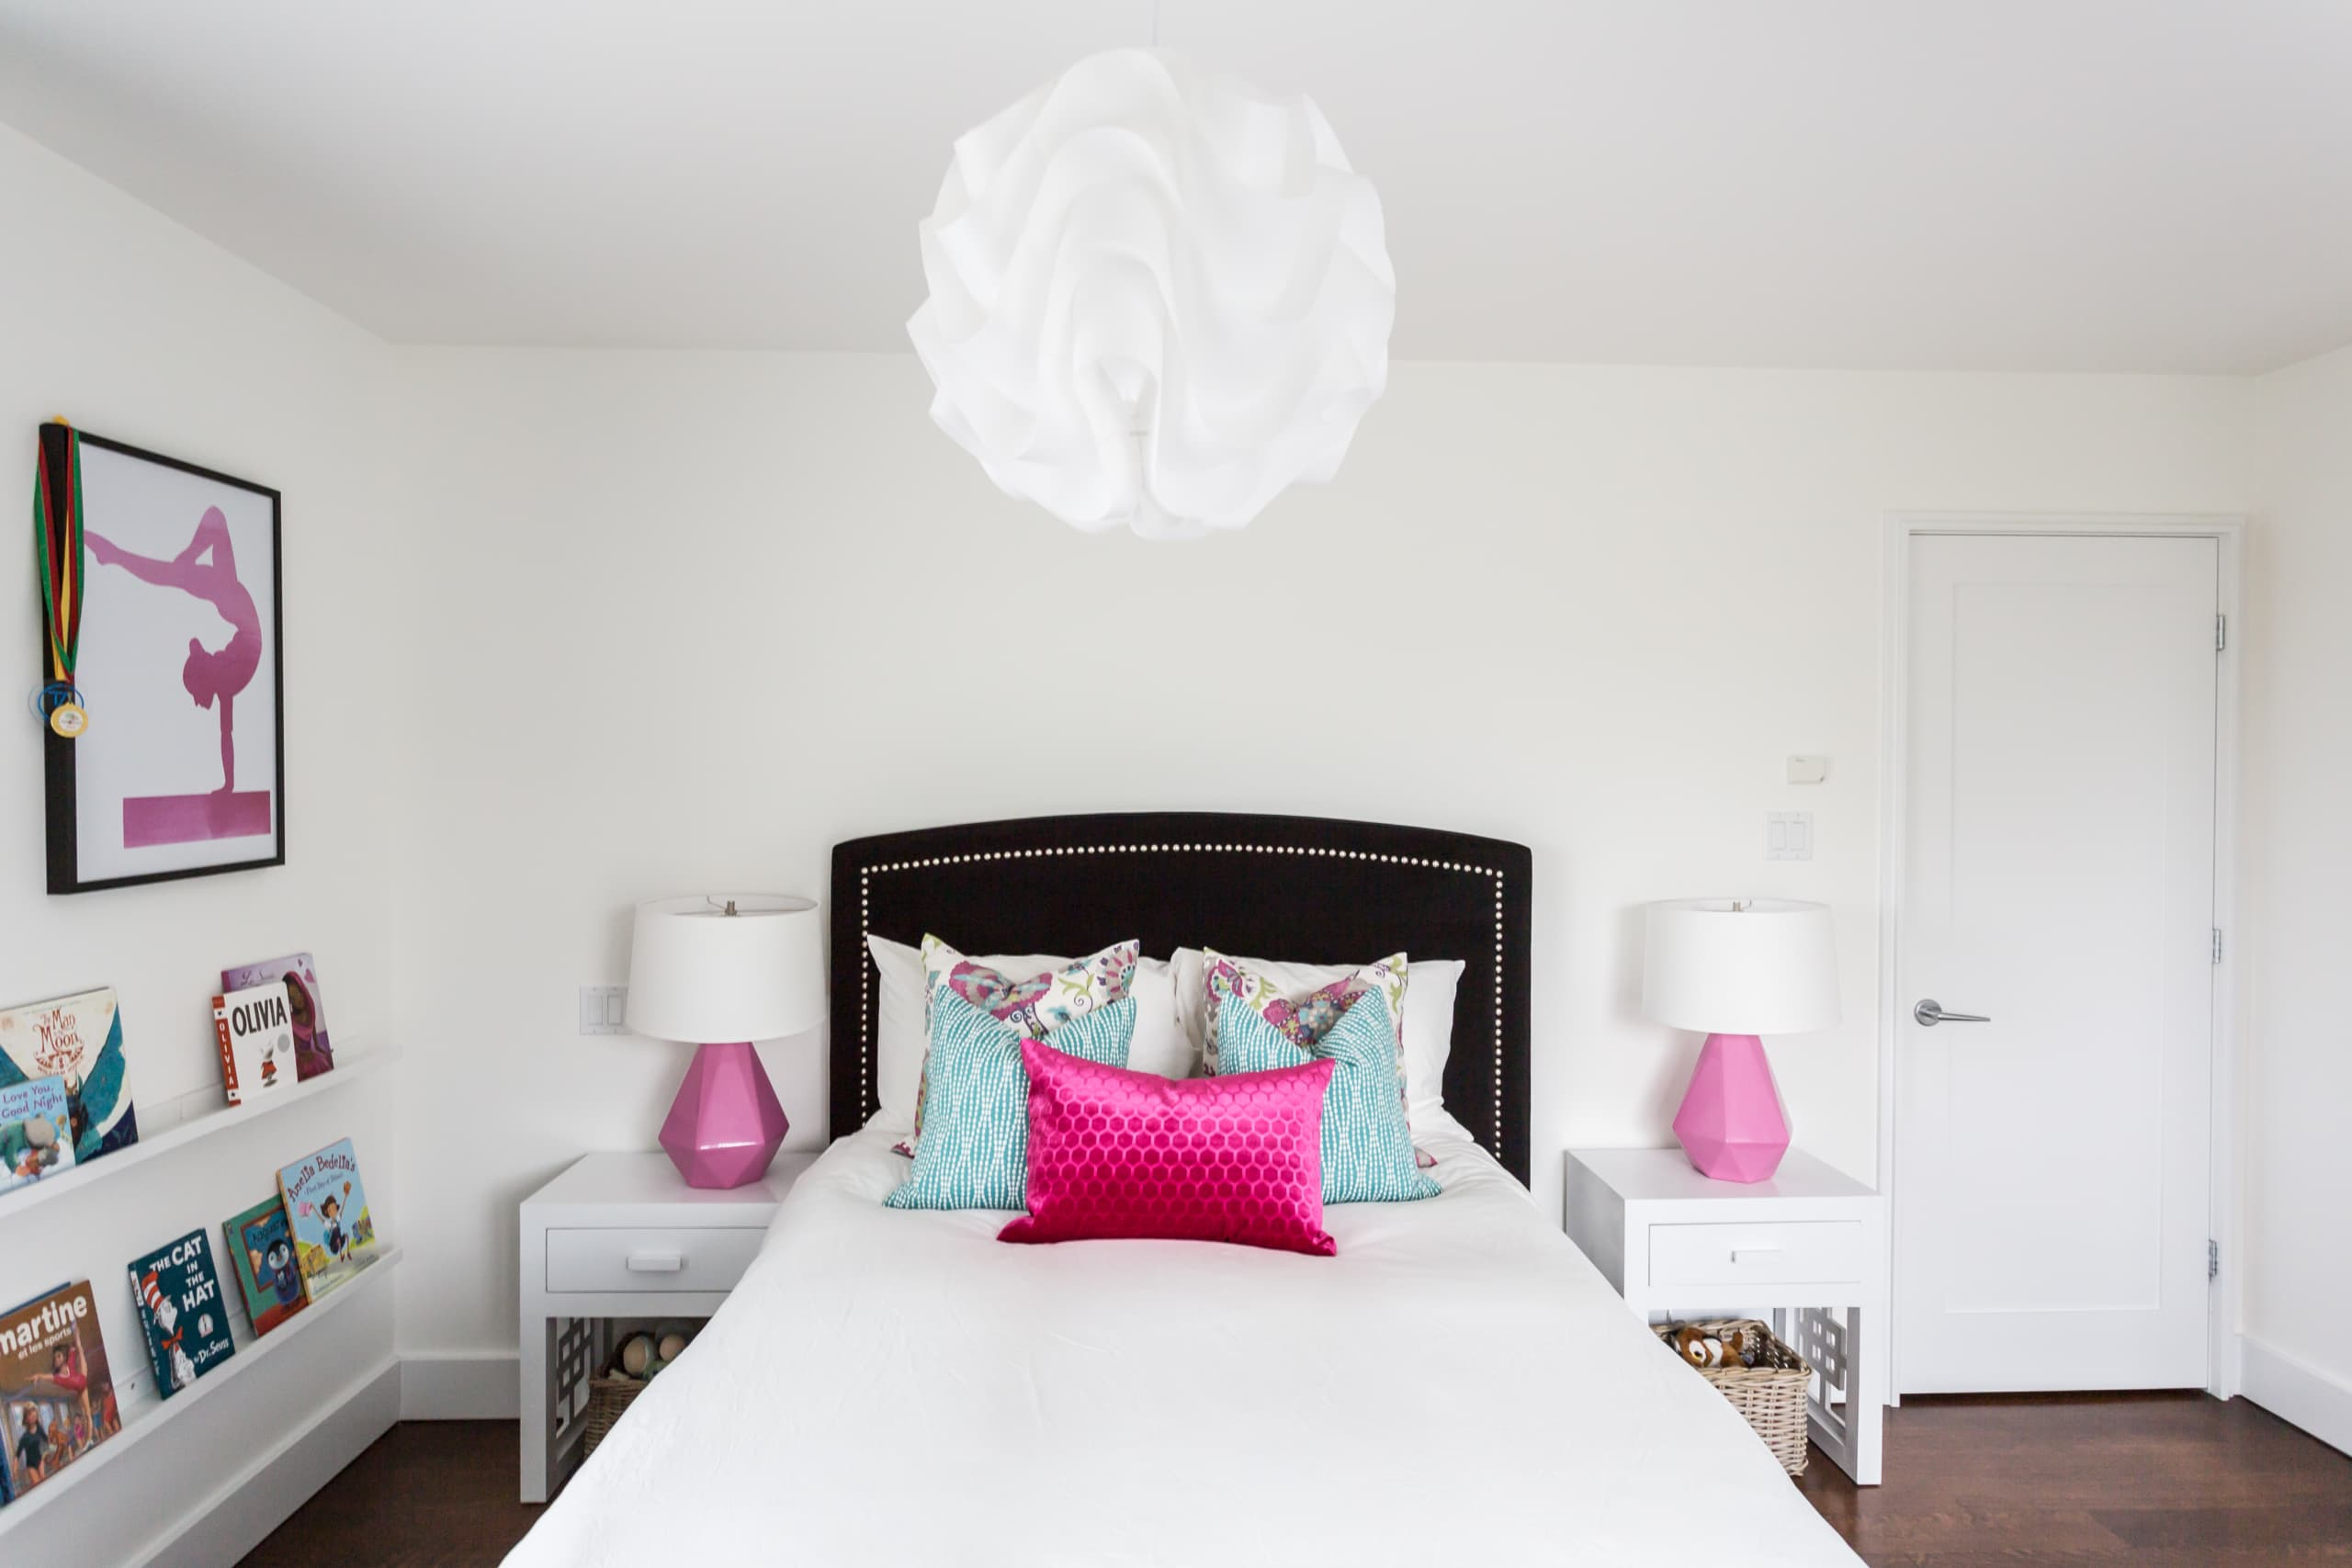 Large bed with an array of colorful pillows on it